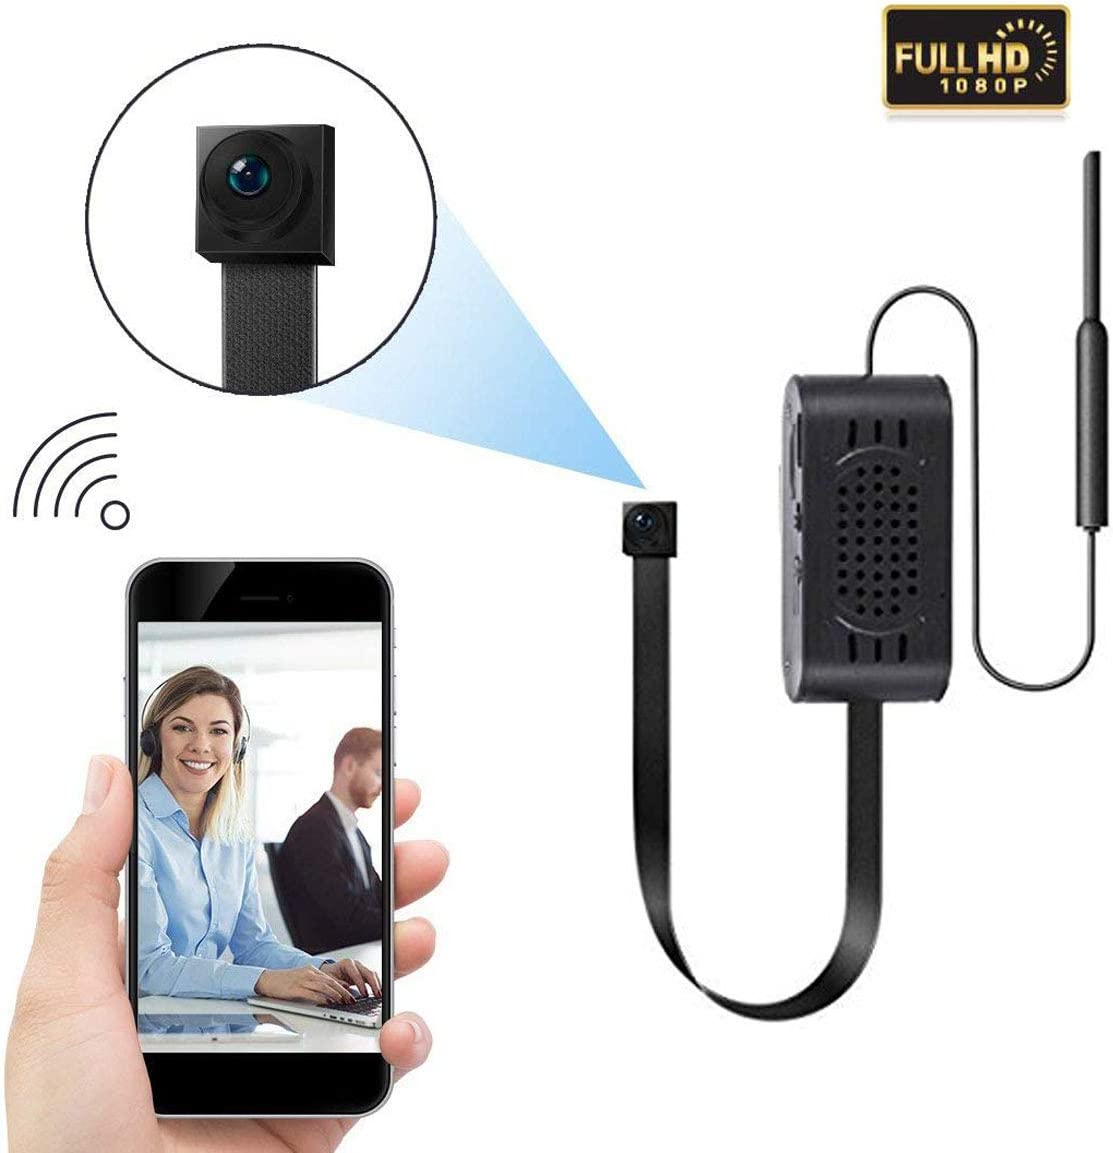 WiFi Hidden Spy Camera HD 1080P Mini Camera Security Camera Wireless Camera with Motion Detection Nanny Cam for iPhone Android Phone Pc